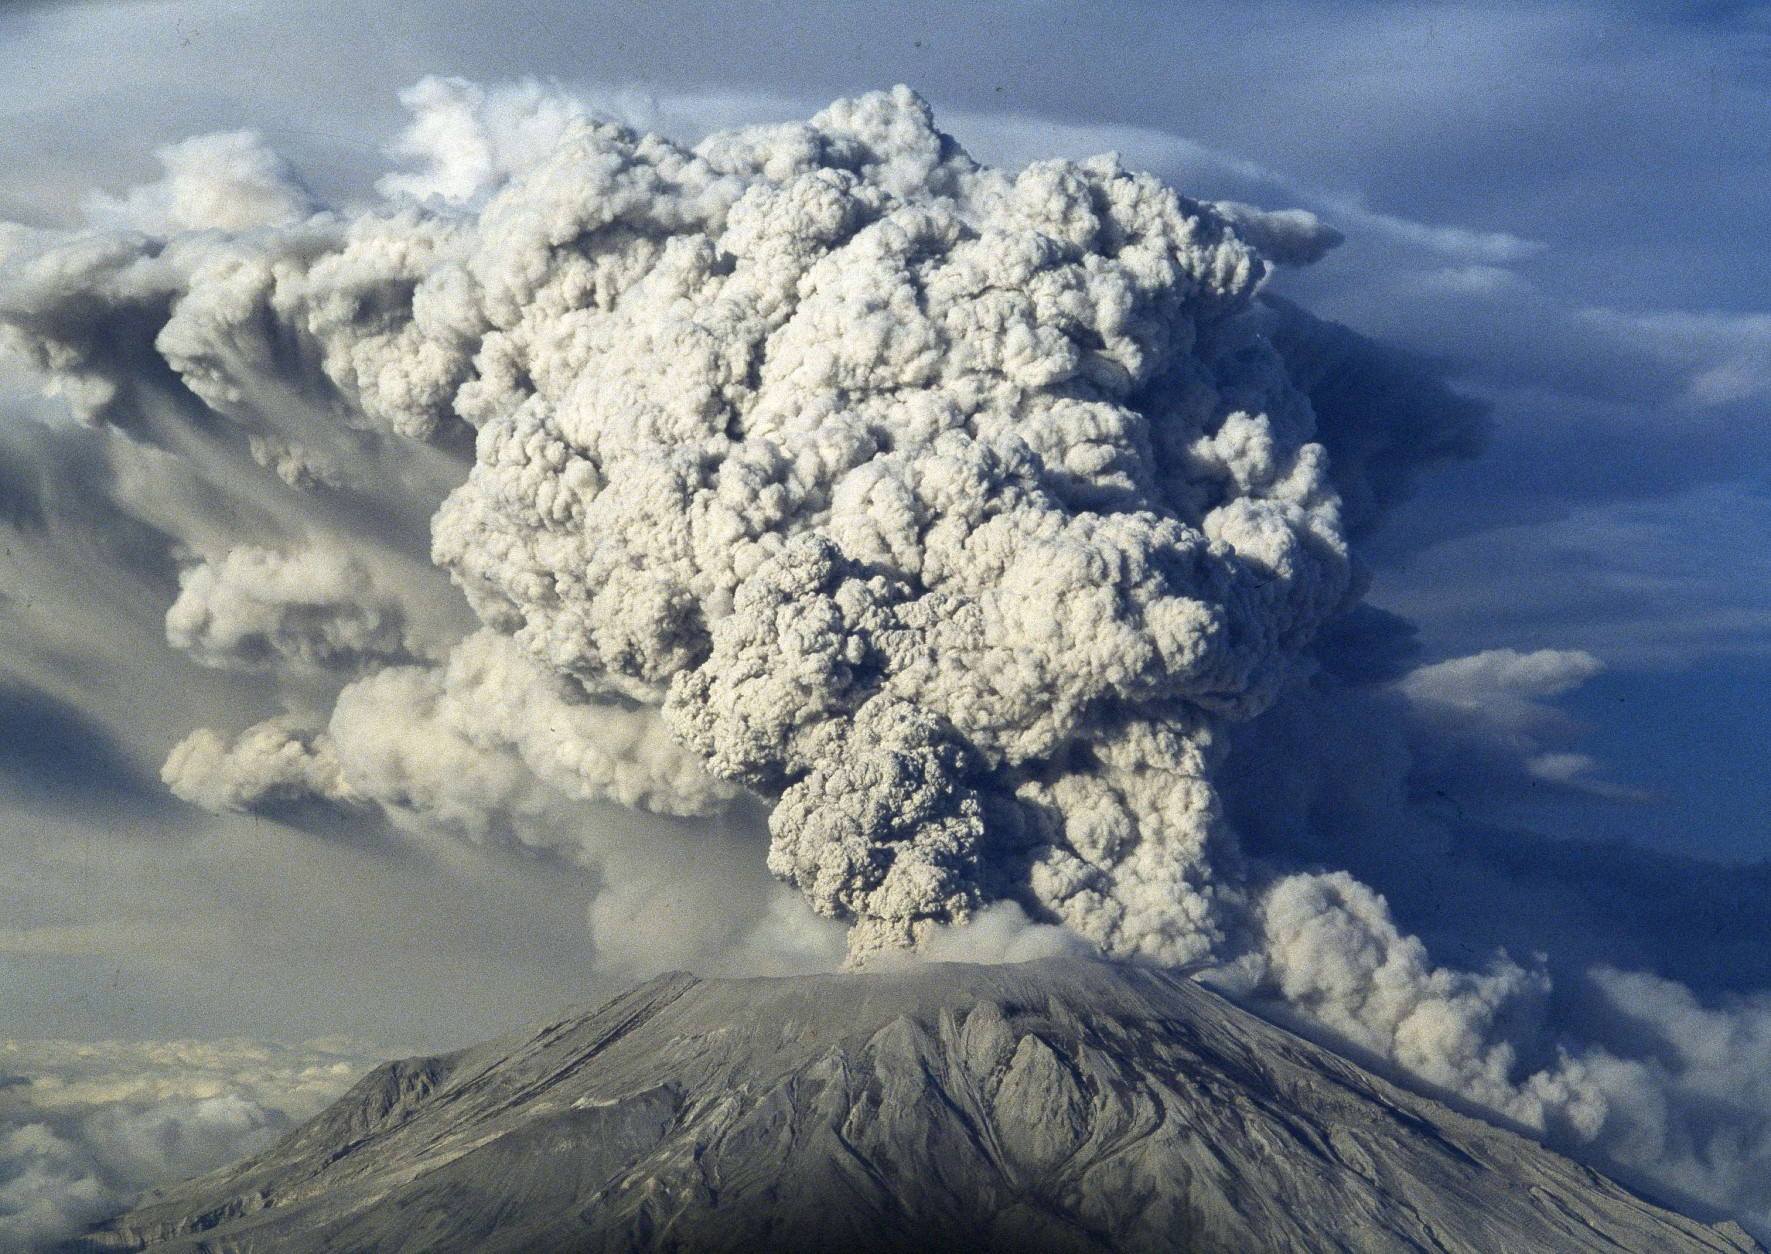 Volcanic ash and steam rises from Mount St. Helens, Wash., as it erupted, May 18, 1980. (AP Photo)